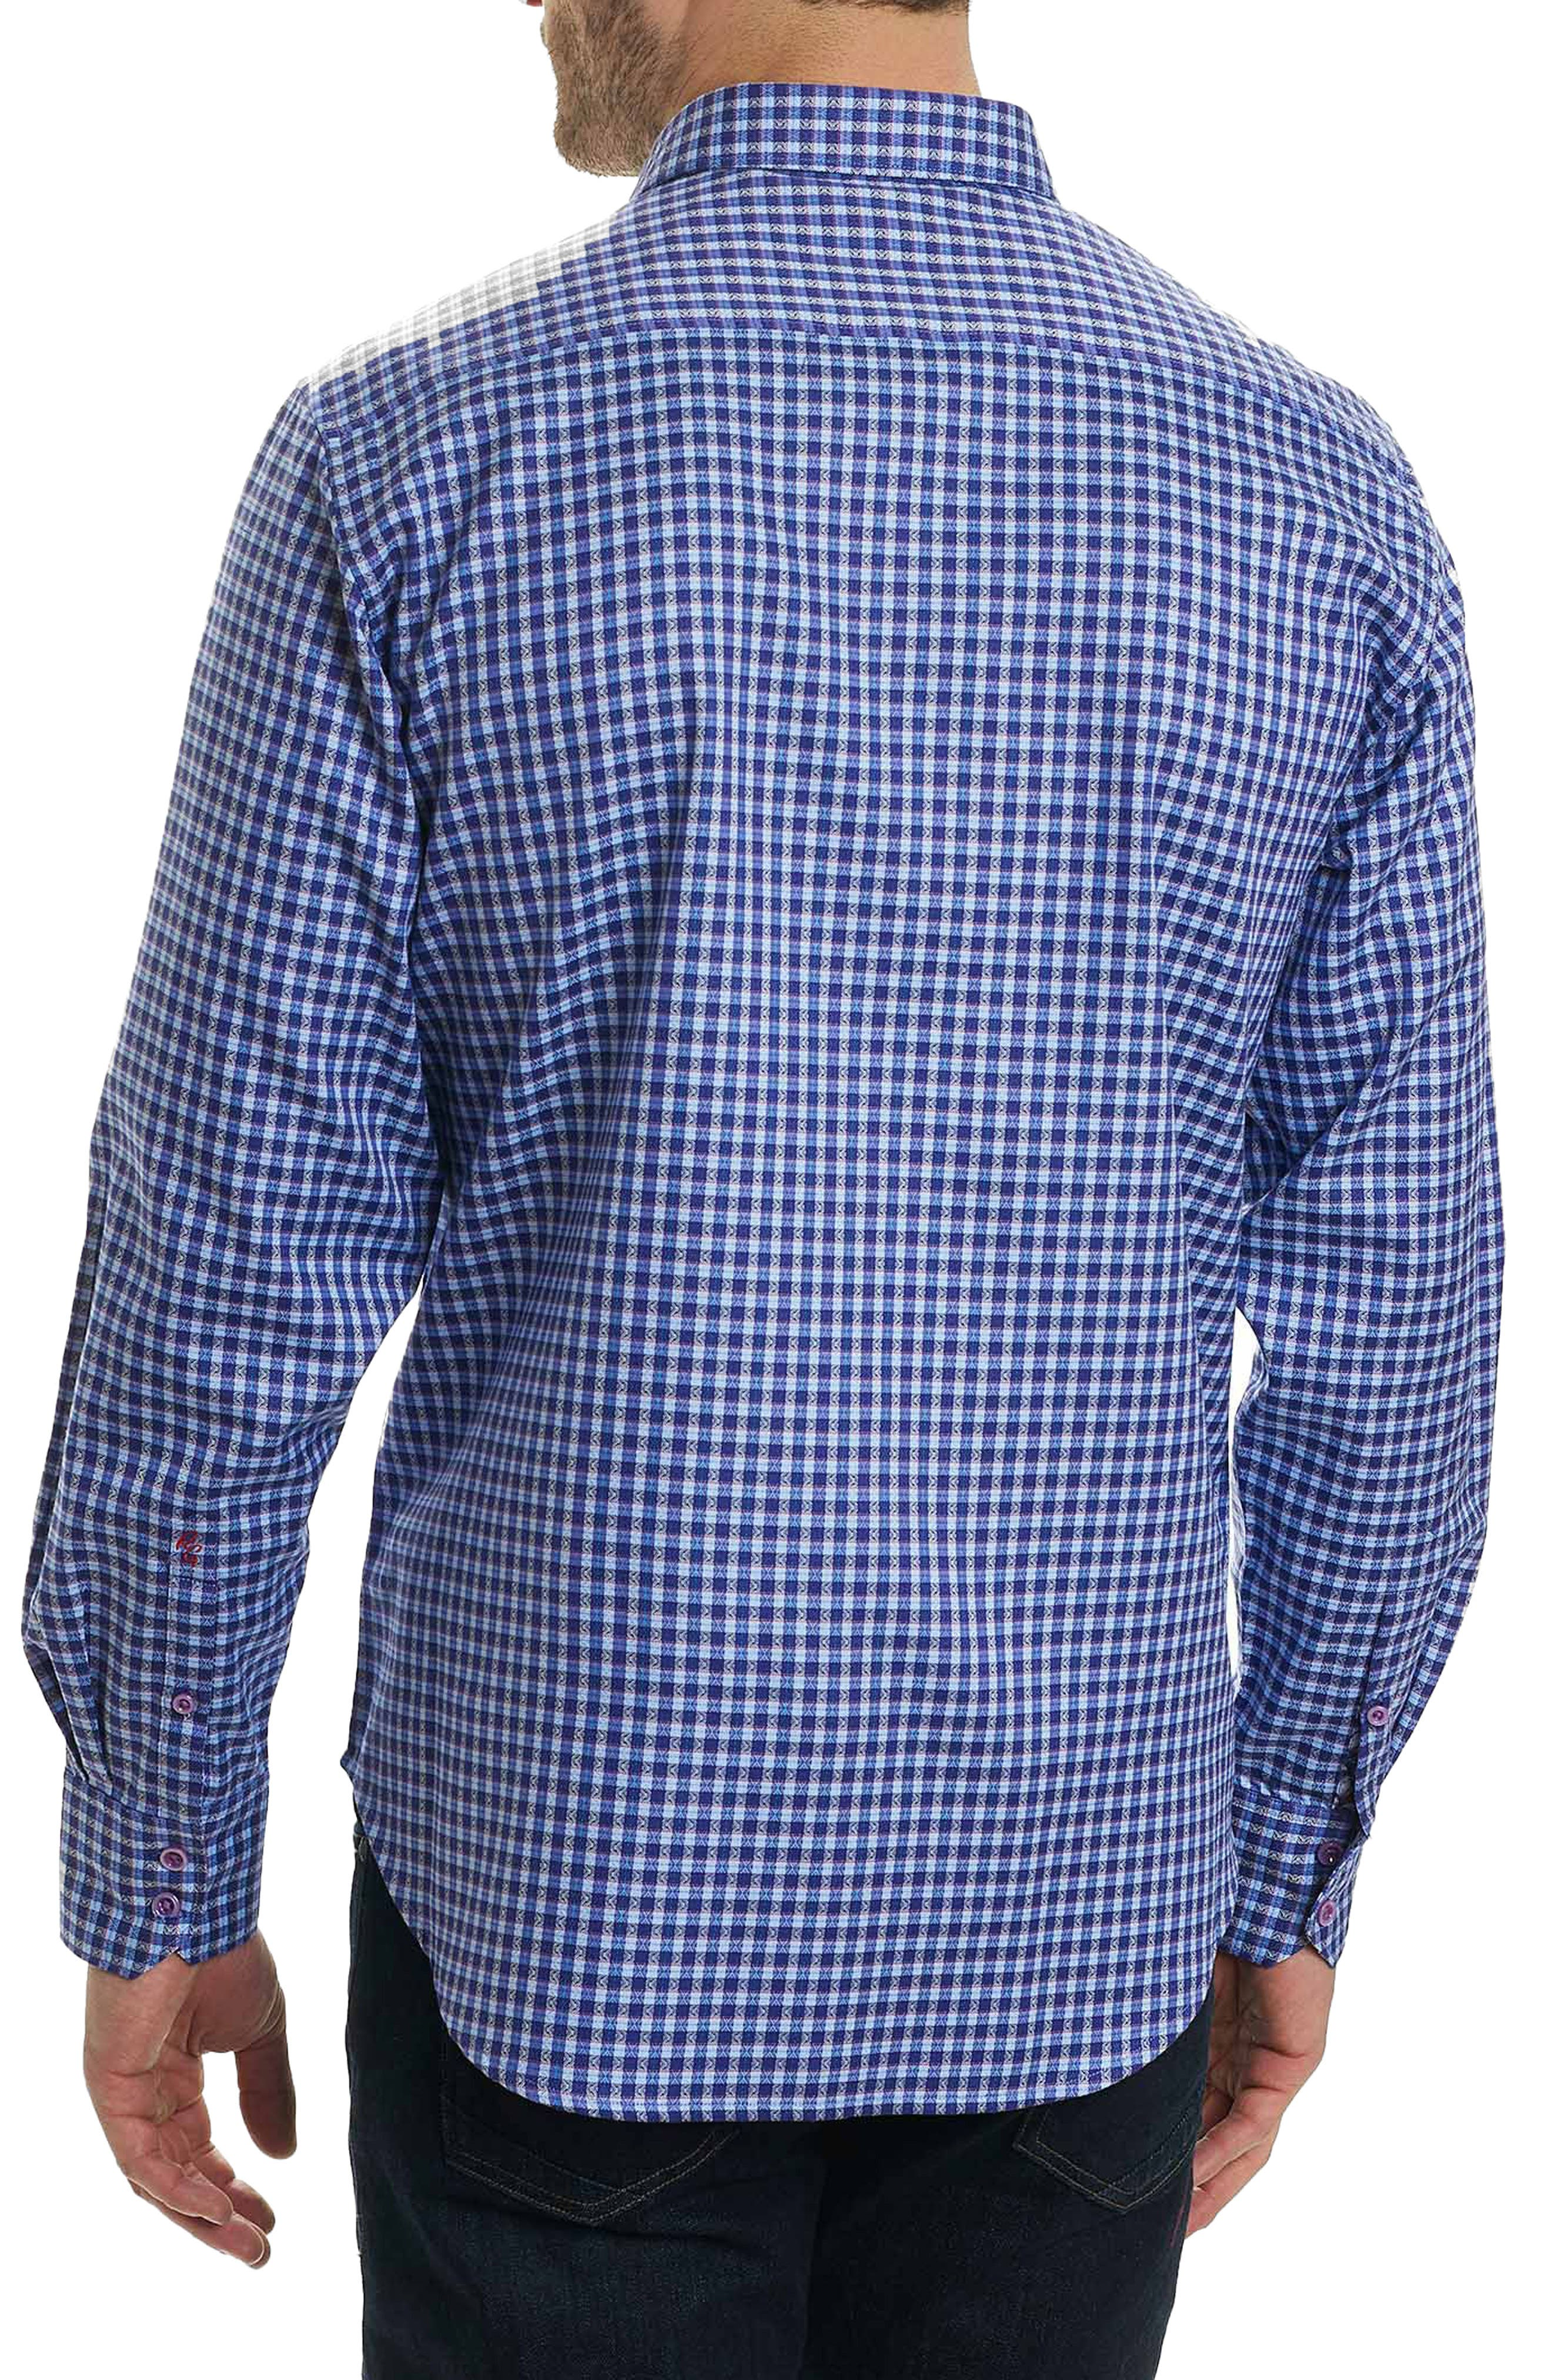 Matira Classic Fit Check Sport Shirt,                             Alternate thumbnail 2, color,                             Purple